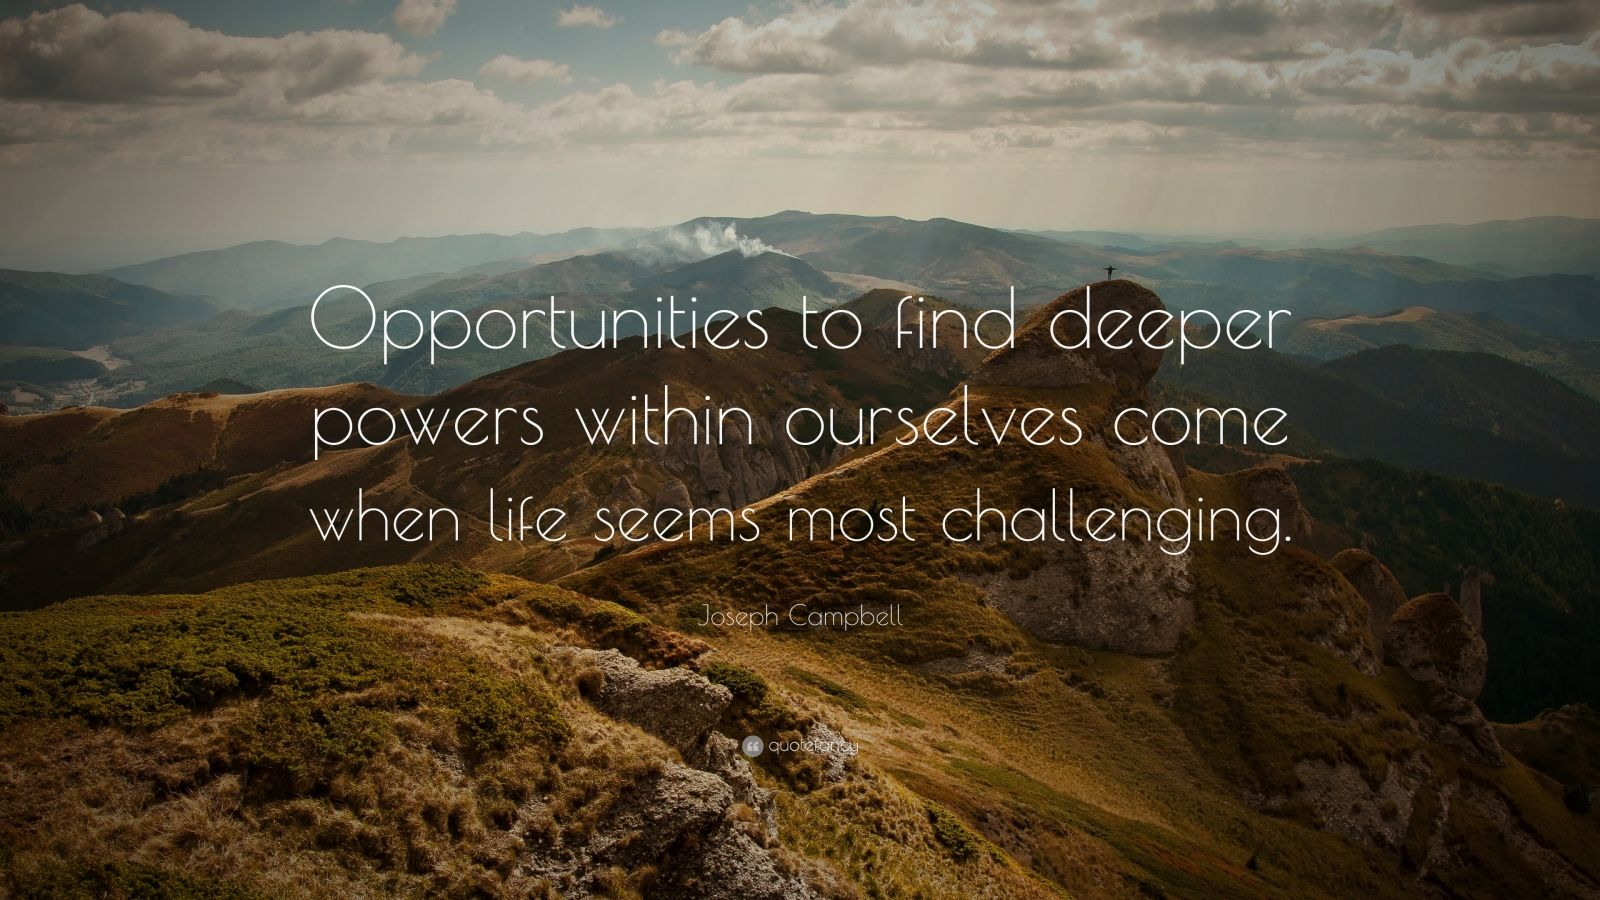 """Joseph Campbell Quote: """"Opportunities to find deeper powers within ourselves come when life seems most challenging."""""""